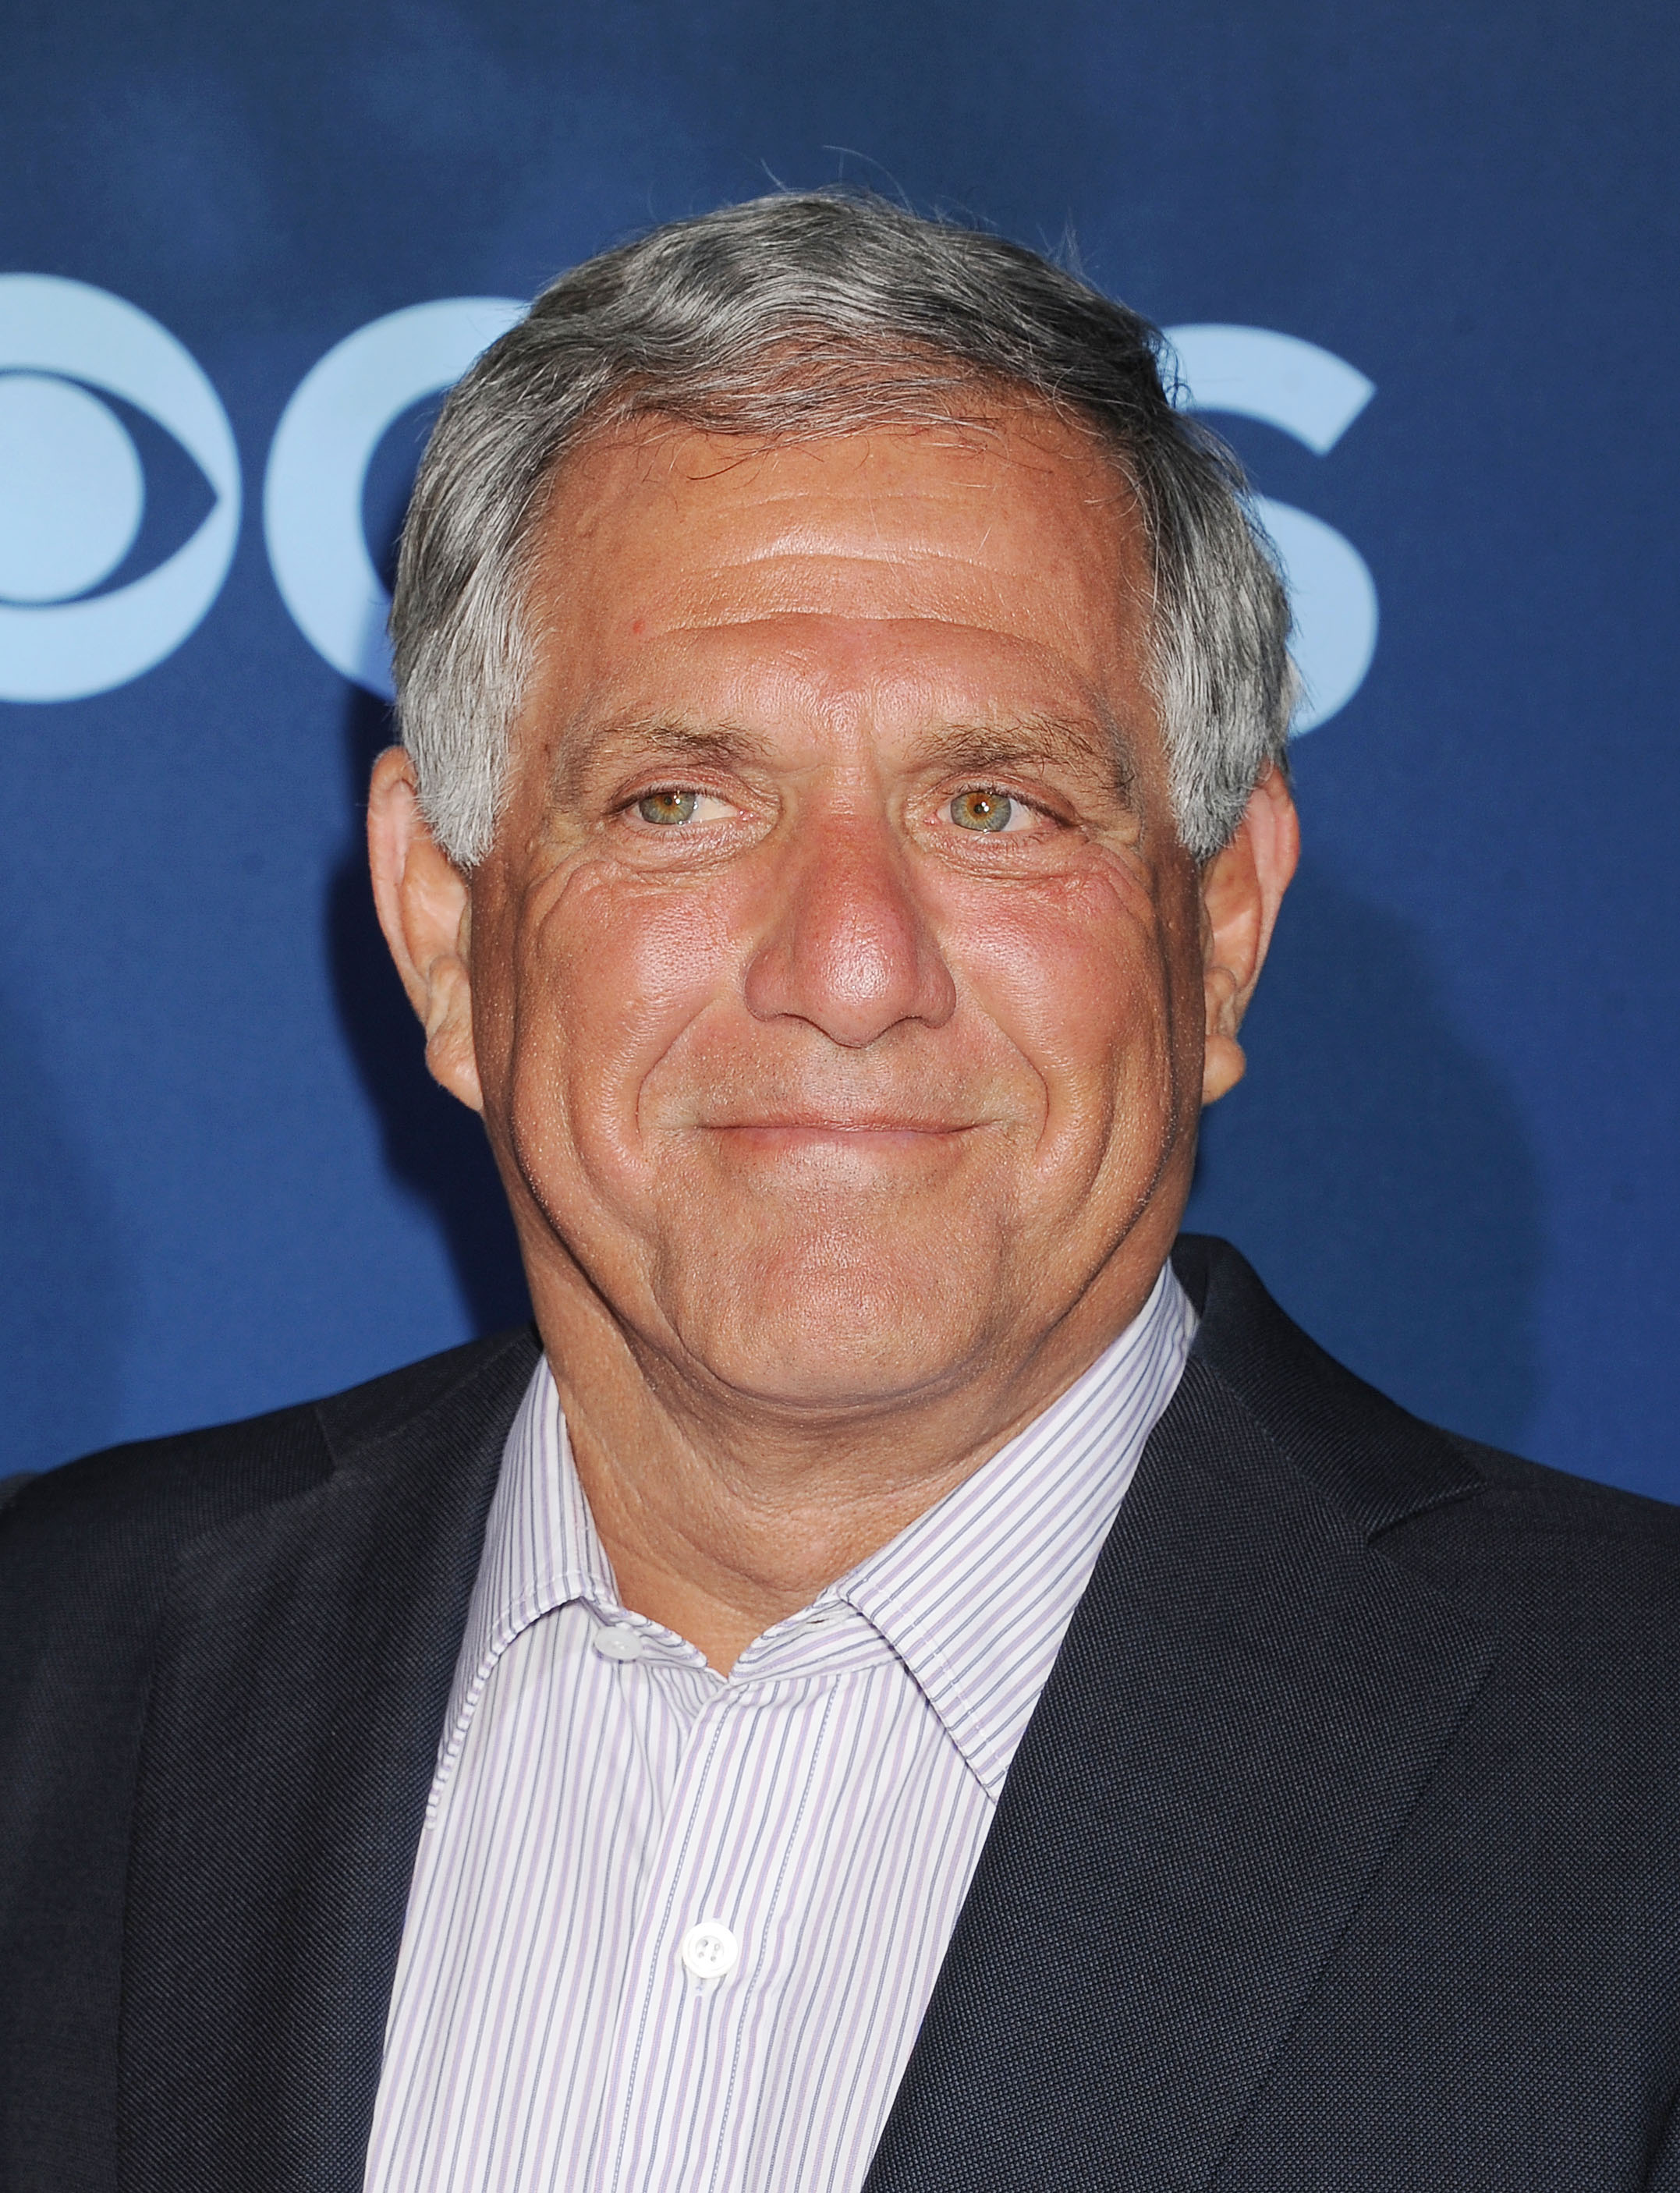 President and CEO of CBS Corporation Leslie Moonves